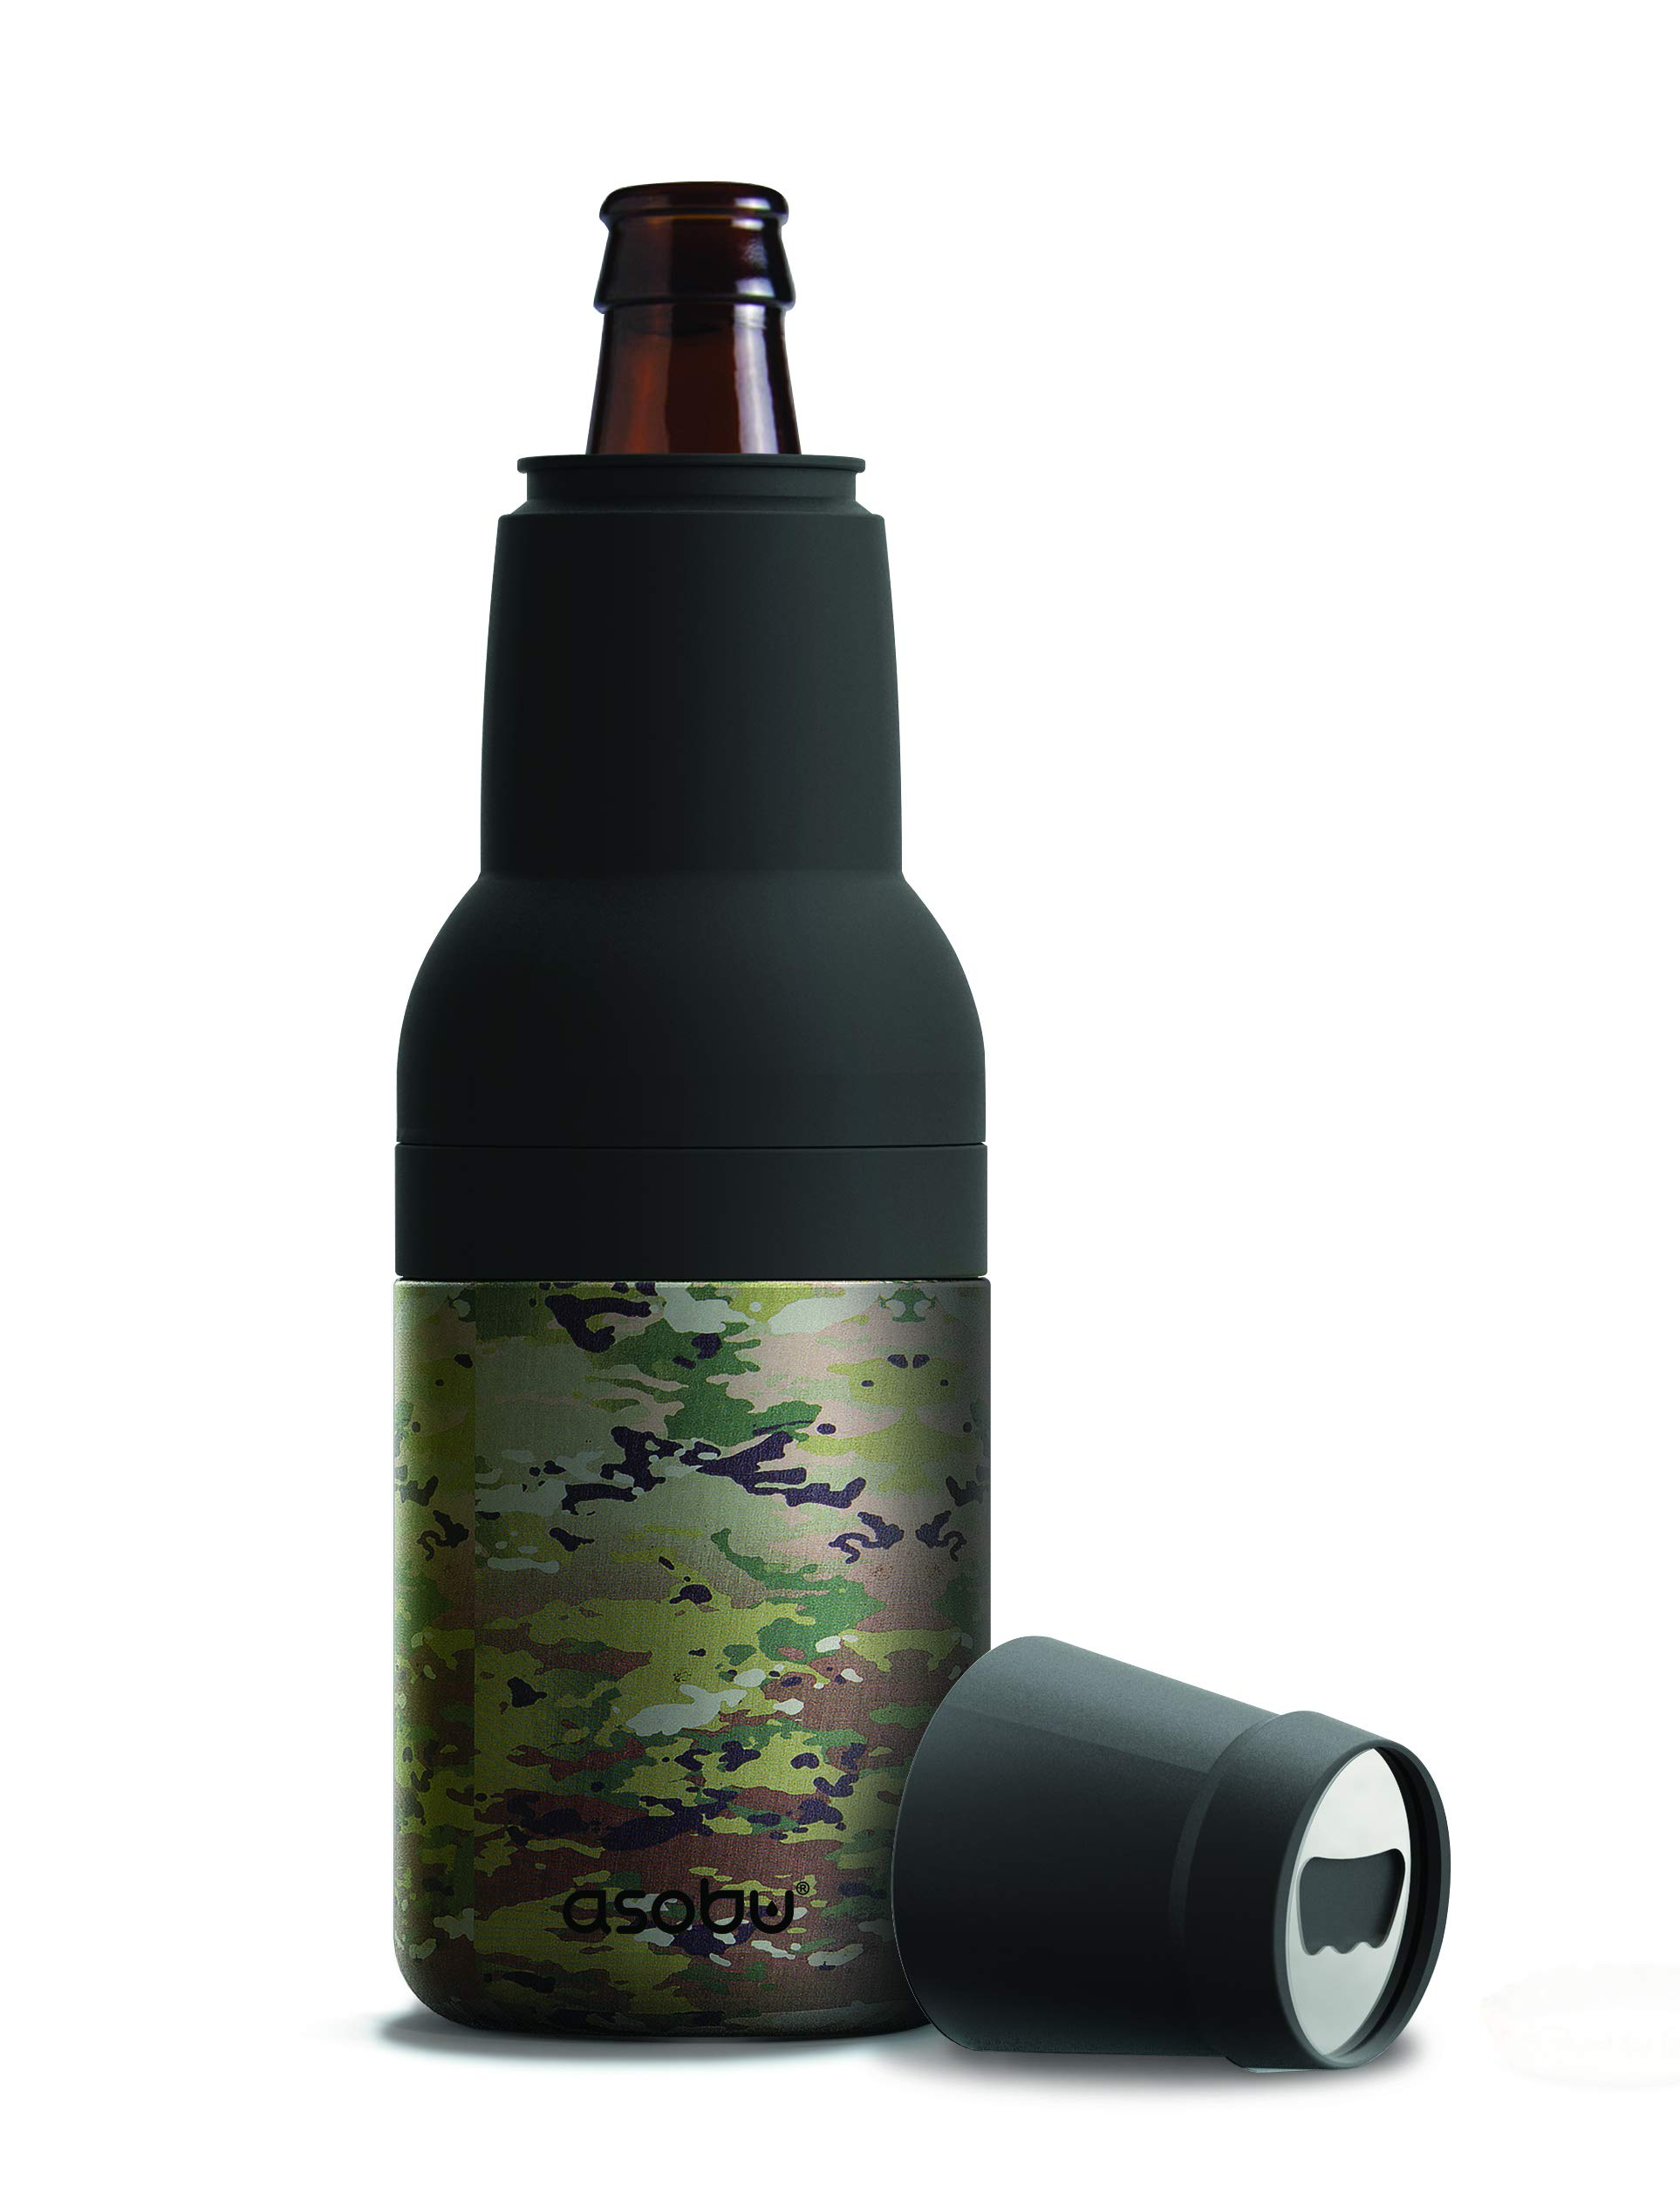 Asobu Frosty Beer 2 Go Vacuum Insulated Double Walled Stainless Steel Beer Bottle and Can Cooler with Beer Opener (Camouflage) by asobu (Image #1)